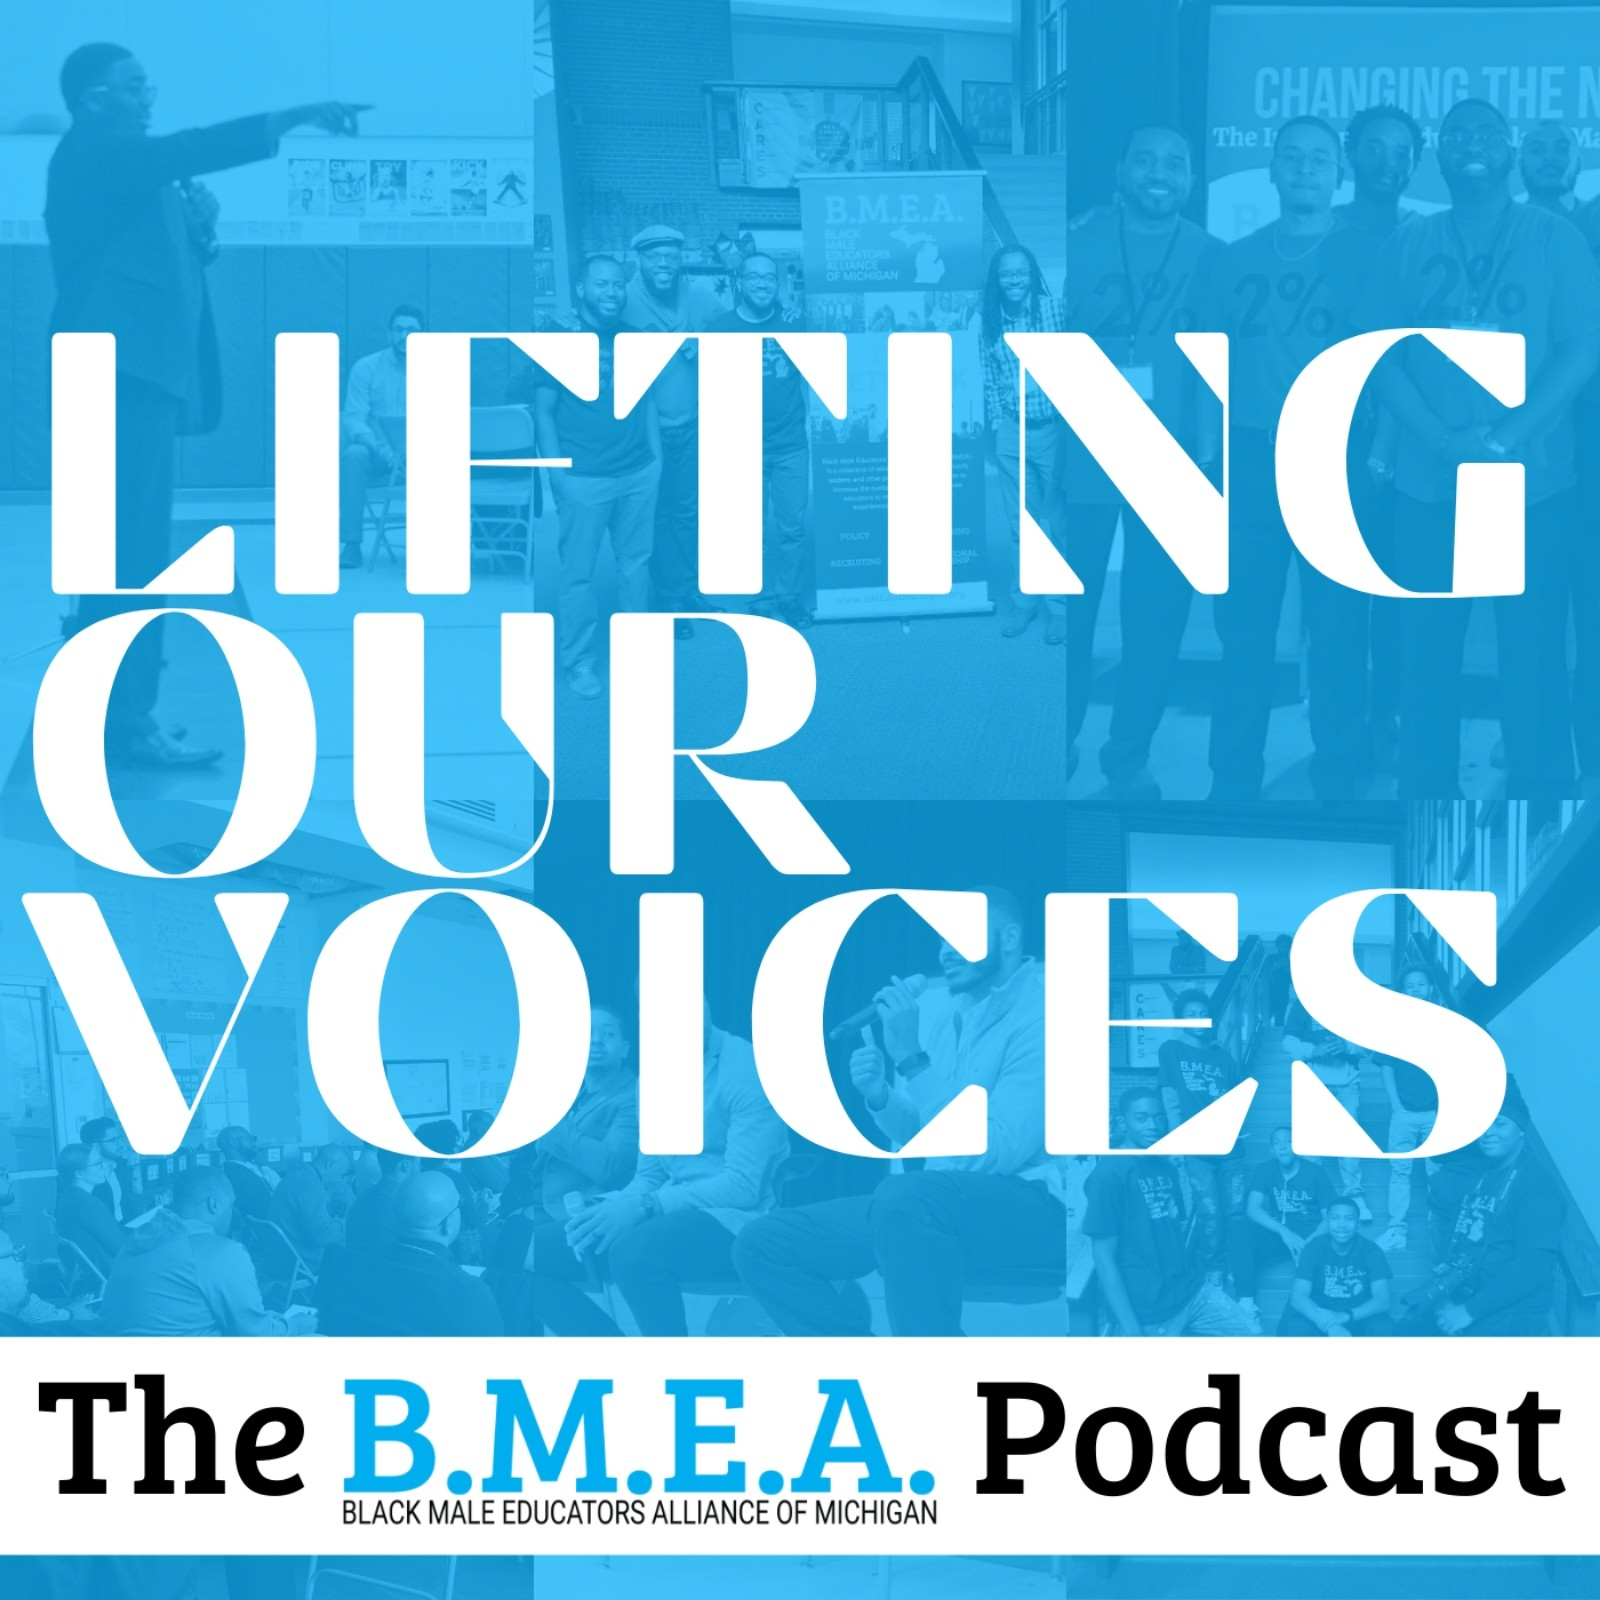 The BMEA Podcast - Lifting Our Voices show art